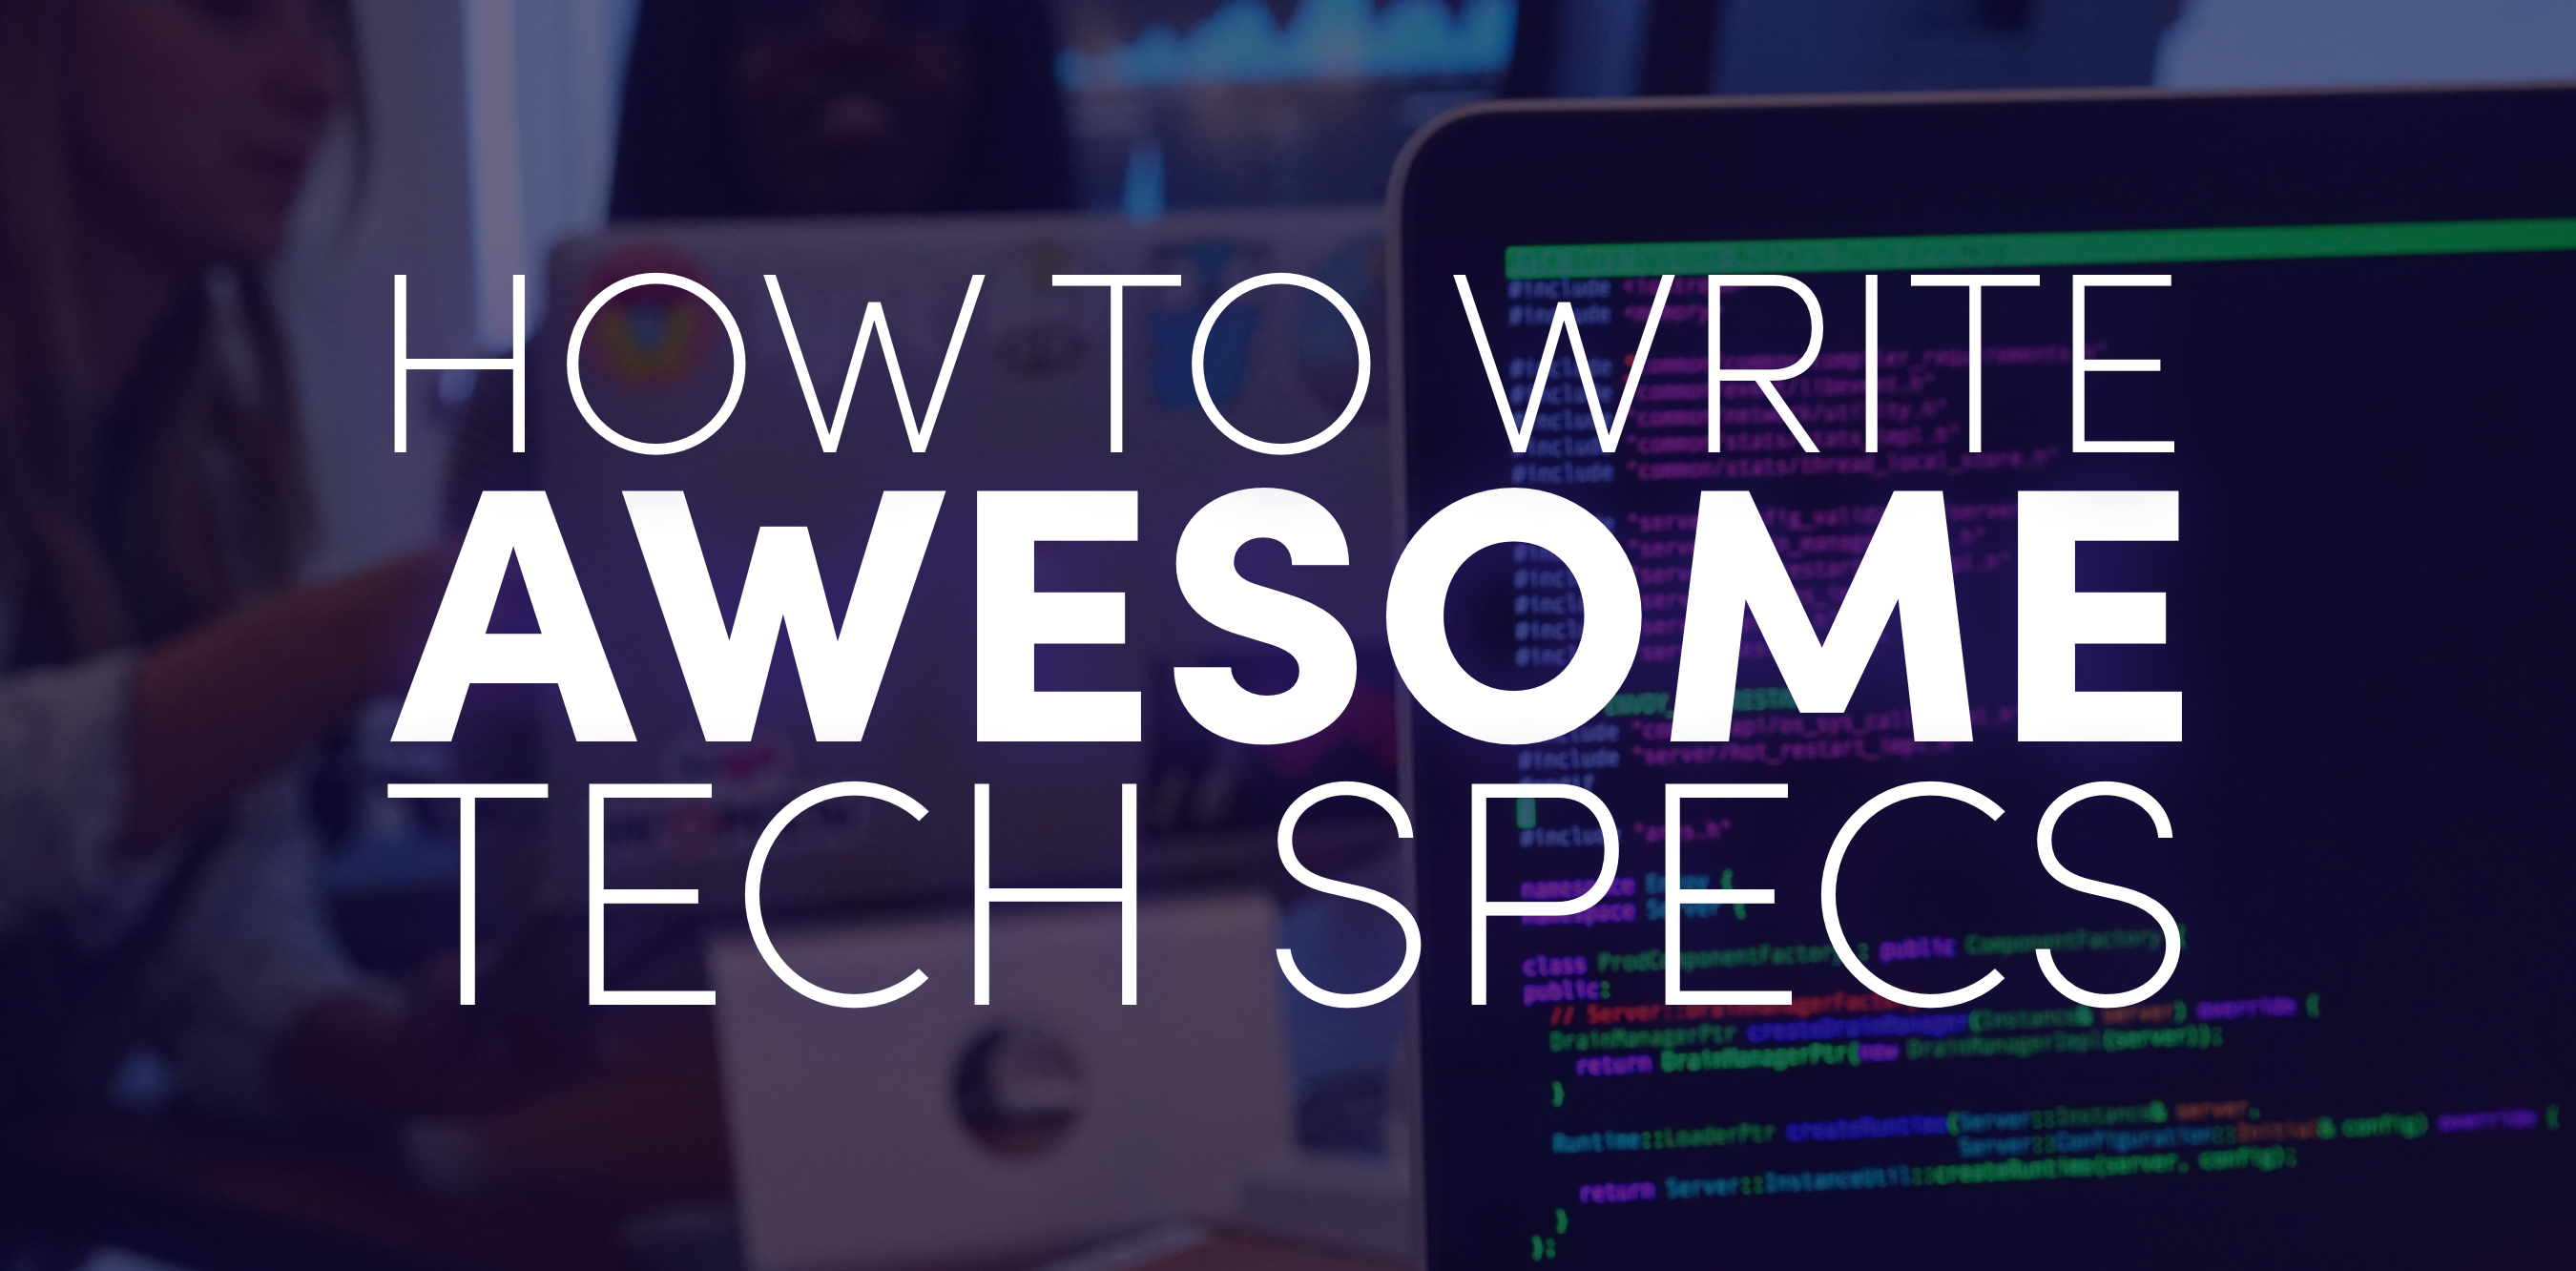 How To Write Awesome Tech Specs Tech Specs Have More Utility Than Most By Black Queen Of Tech Lyft Engineering